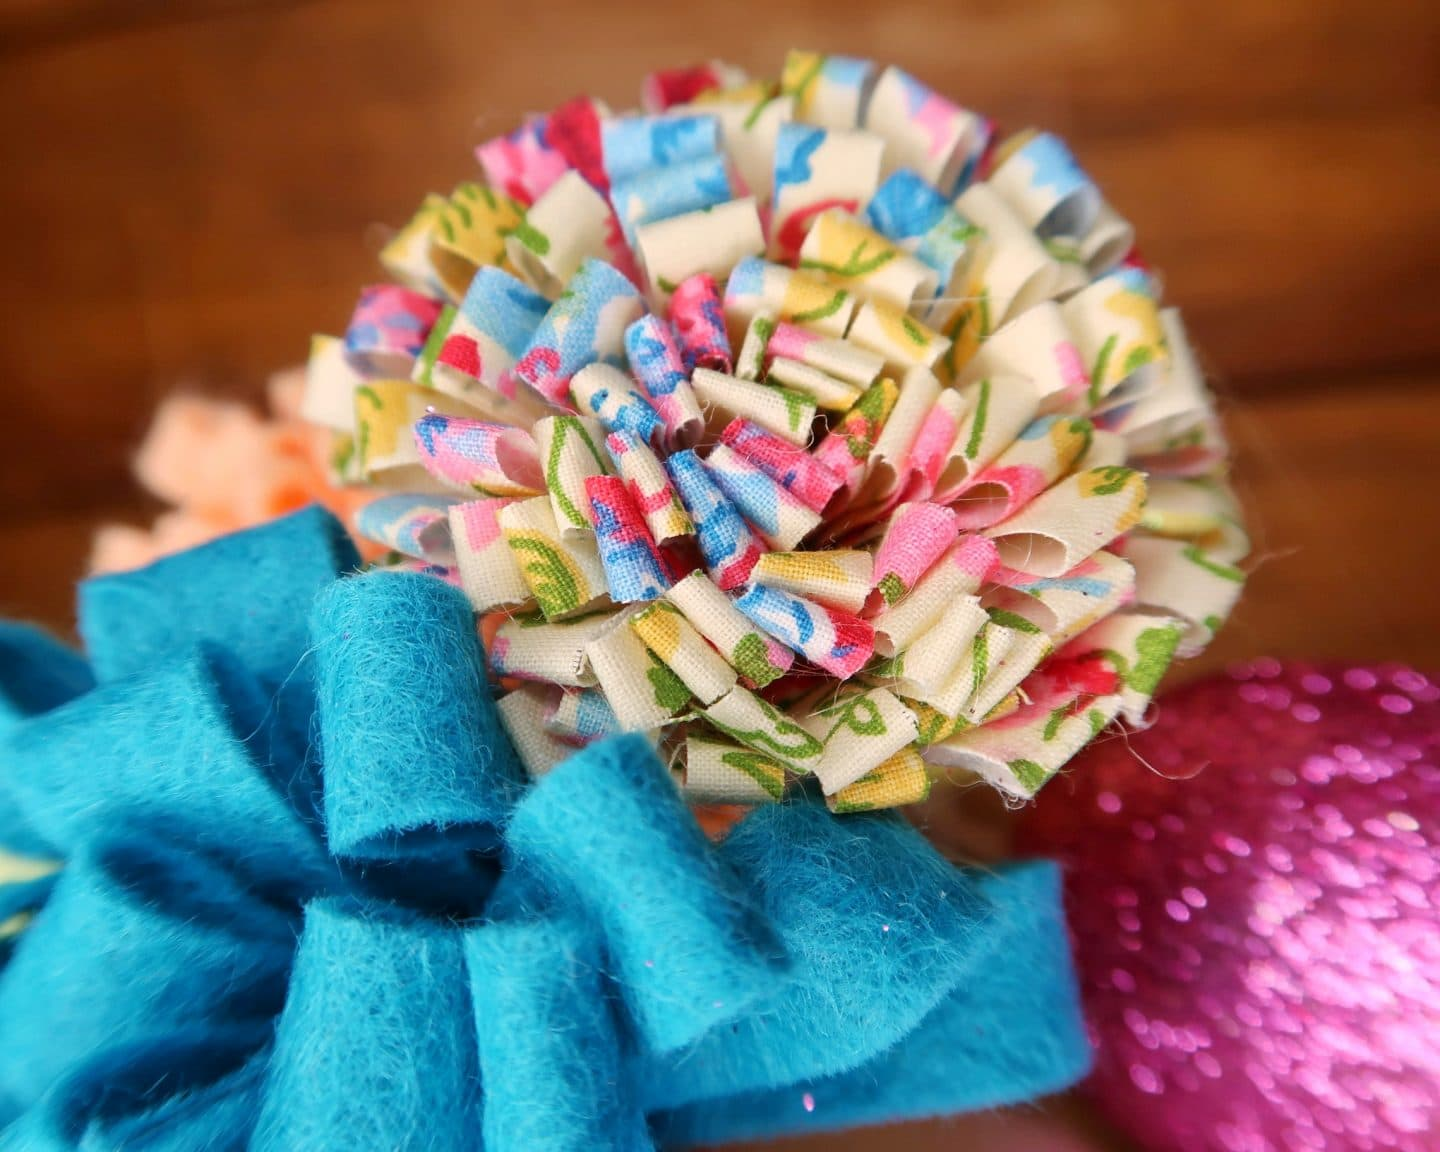 One of the fabric flowers